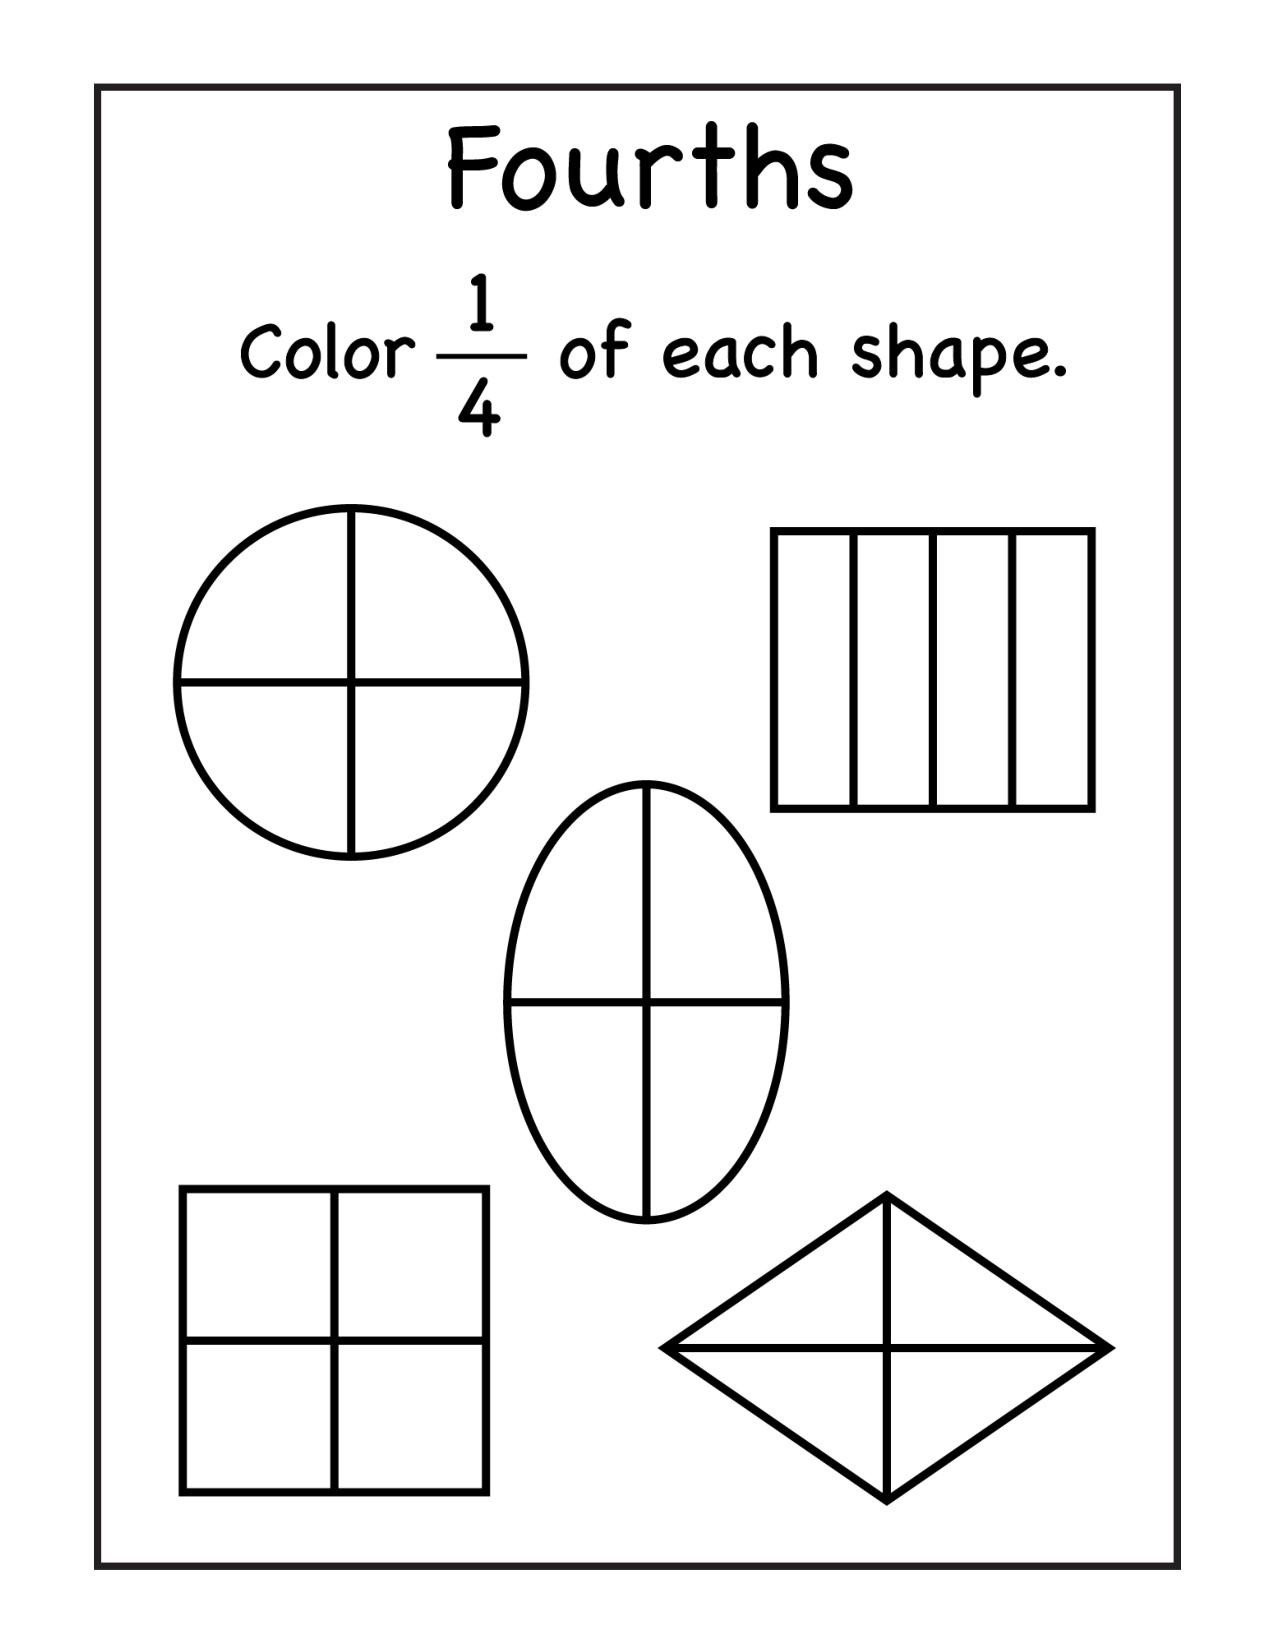 Fraction Worksheets for 1st Grade Fraction Worksheets for 1st Grade